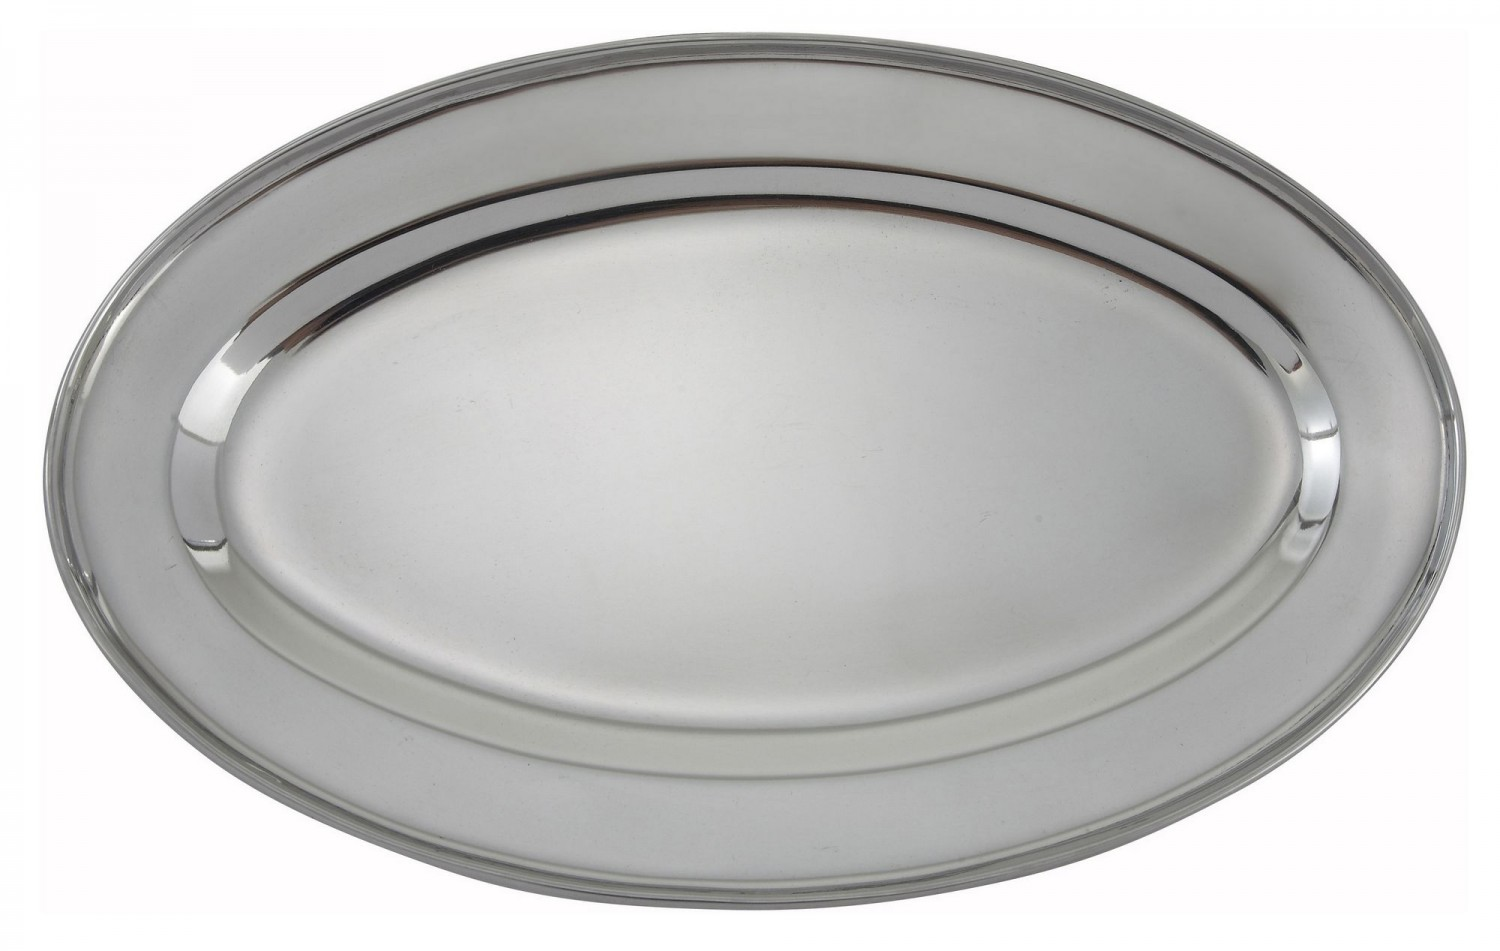 Winco OPL-16 Oval Stainless Steel Platter